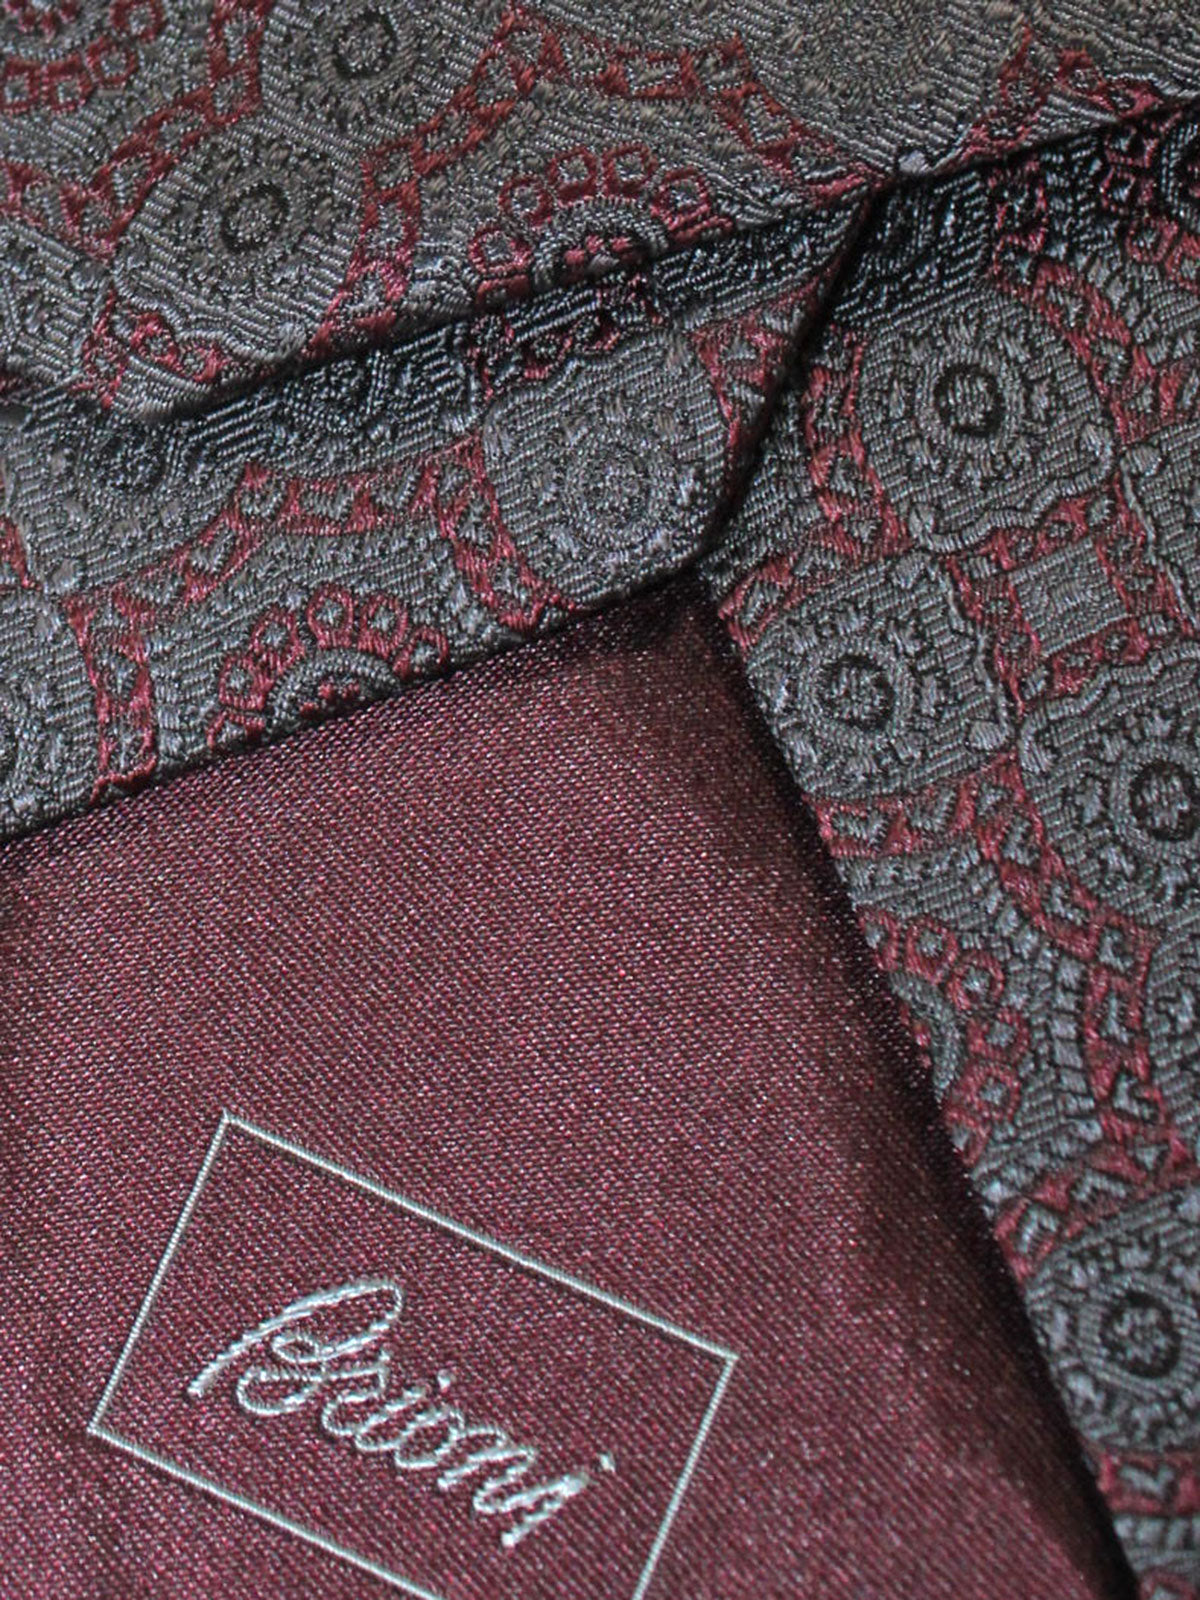 Brioni Silk Tie Brown Dark Gray Medallions Design